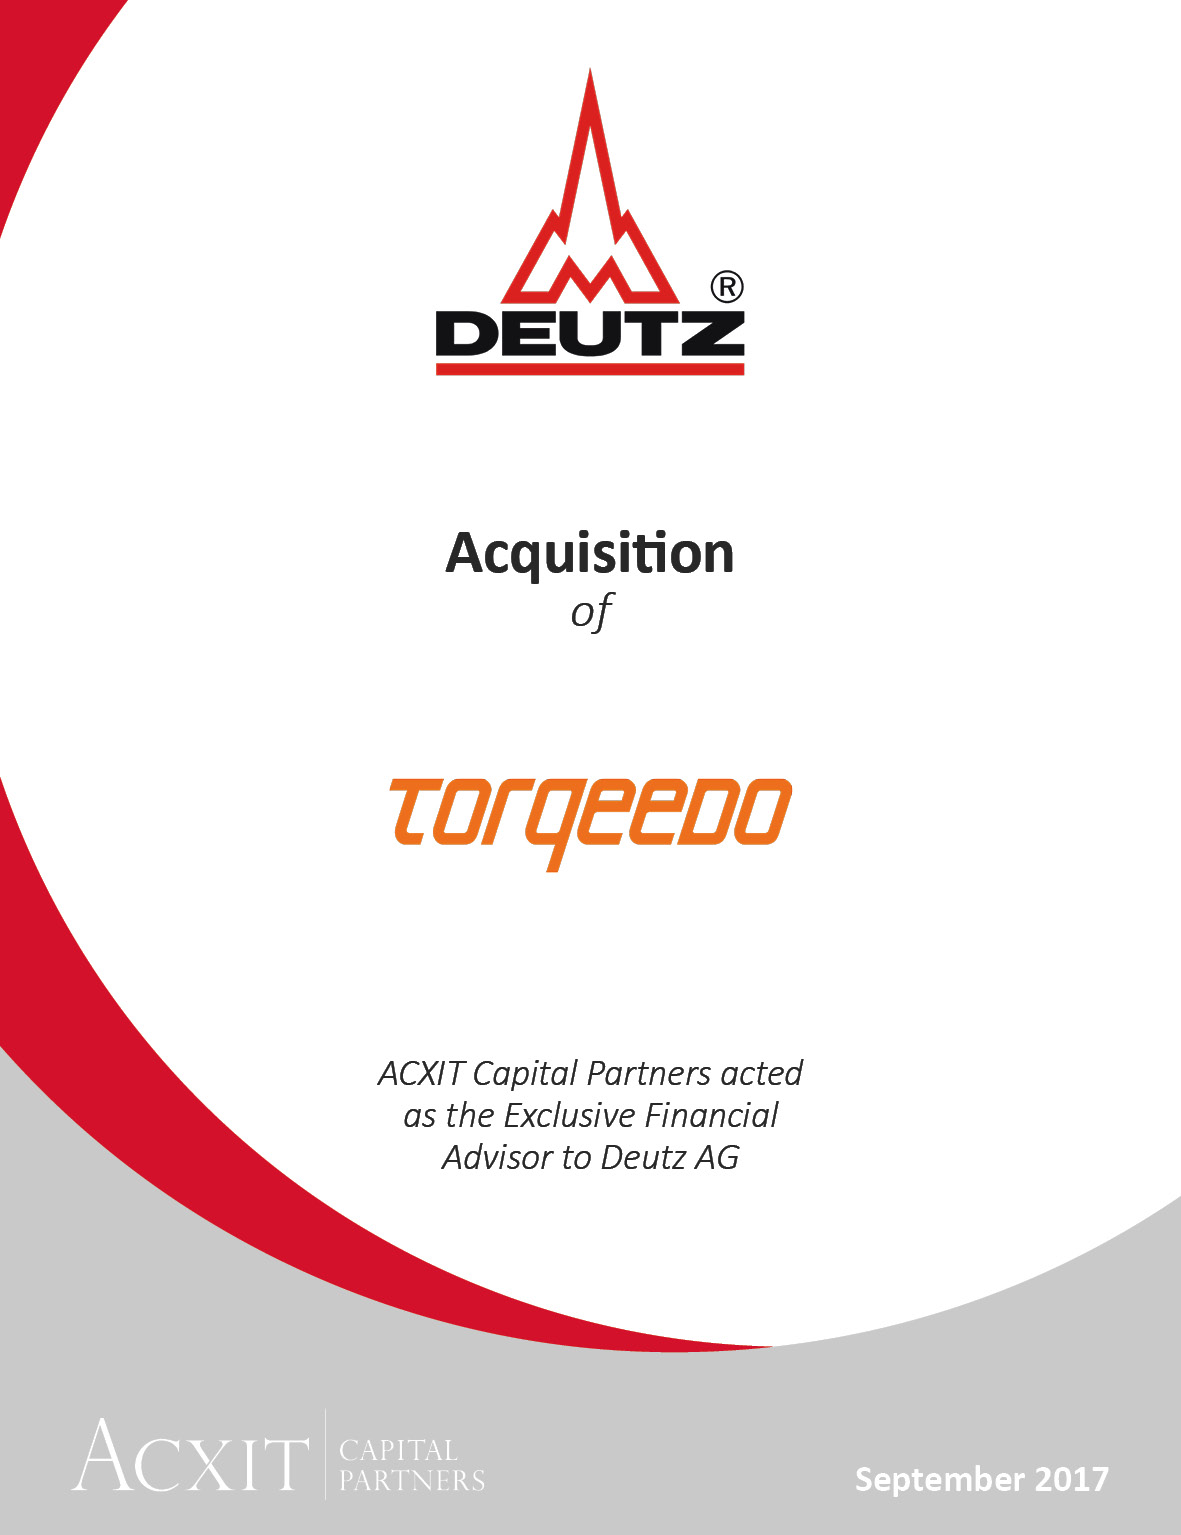 DEUTZ enters the field of electrification and acquires electric drive specialist Torqeedo